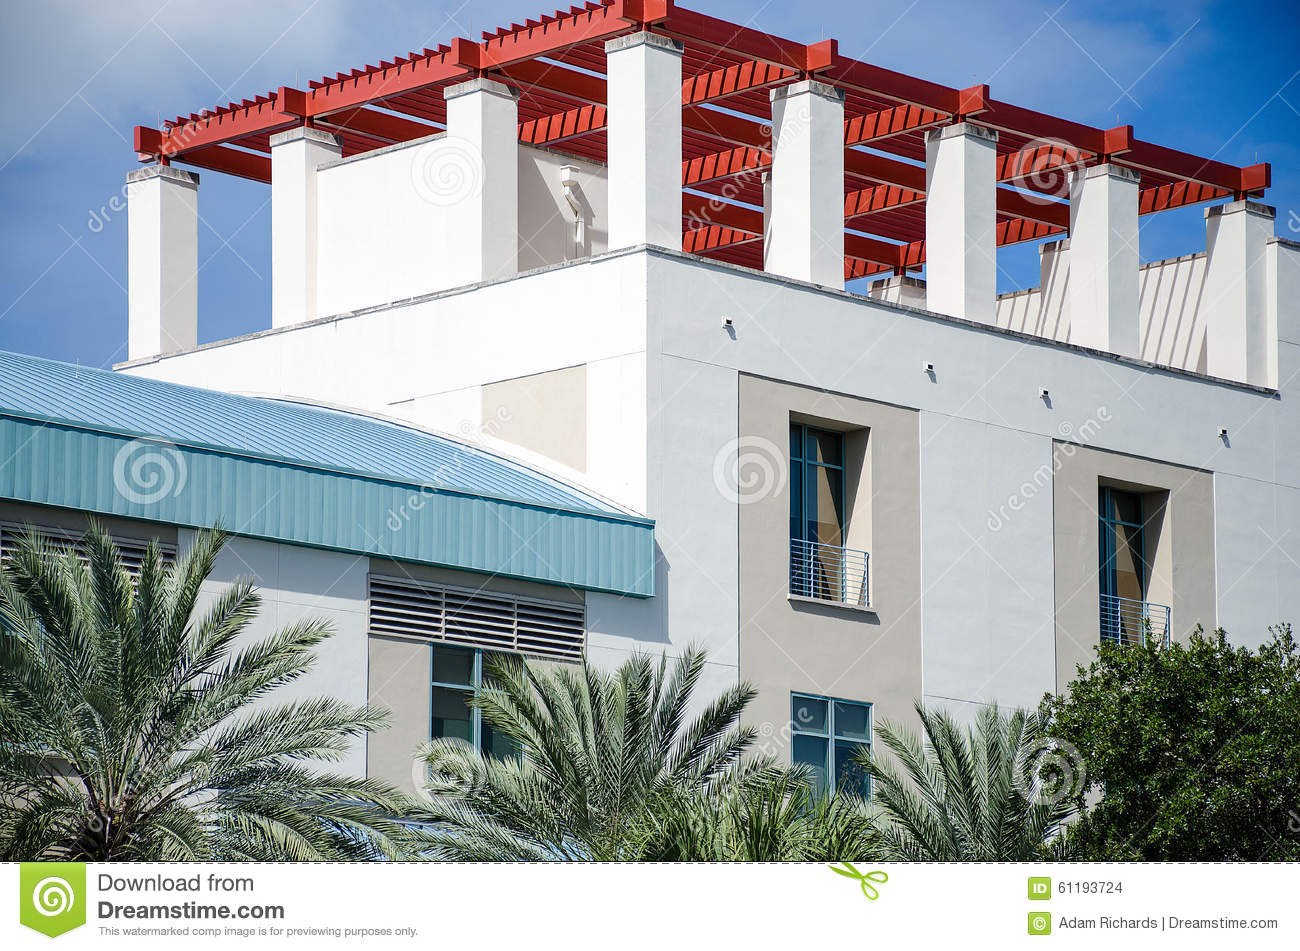 Red Roof Stock Photo Image 61193724